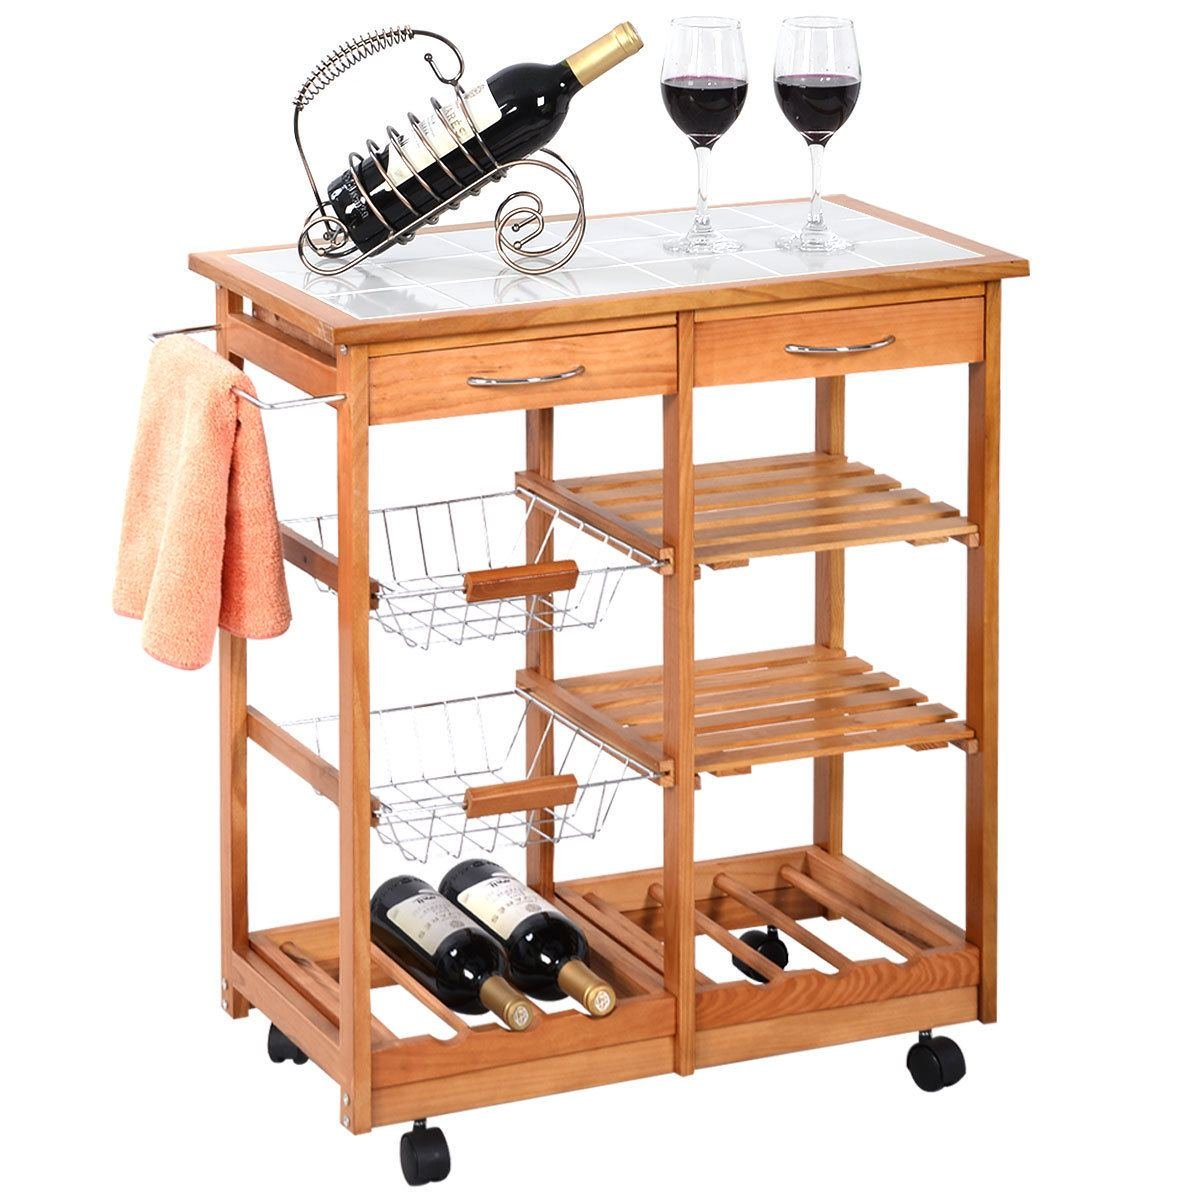 New Rolling Wood Kitchen Trolley Cart Dining Storage Drawers Stand Durable